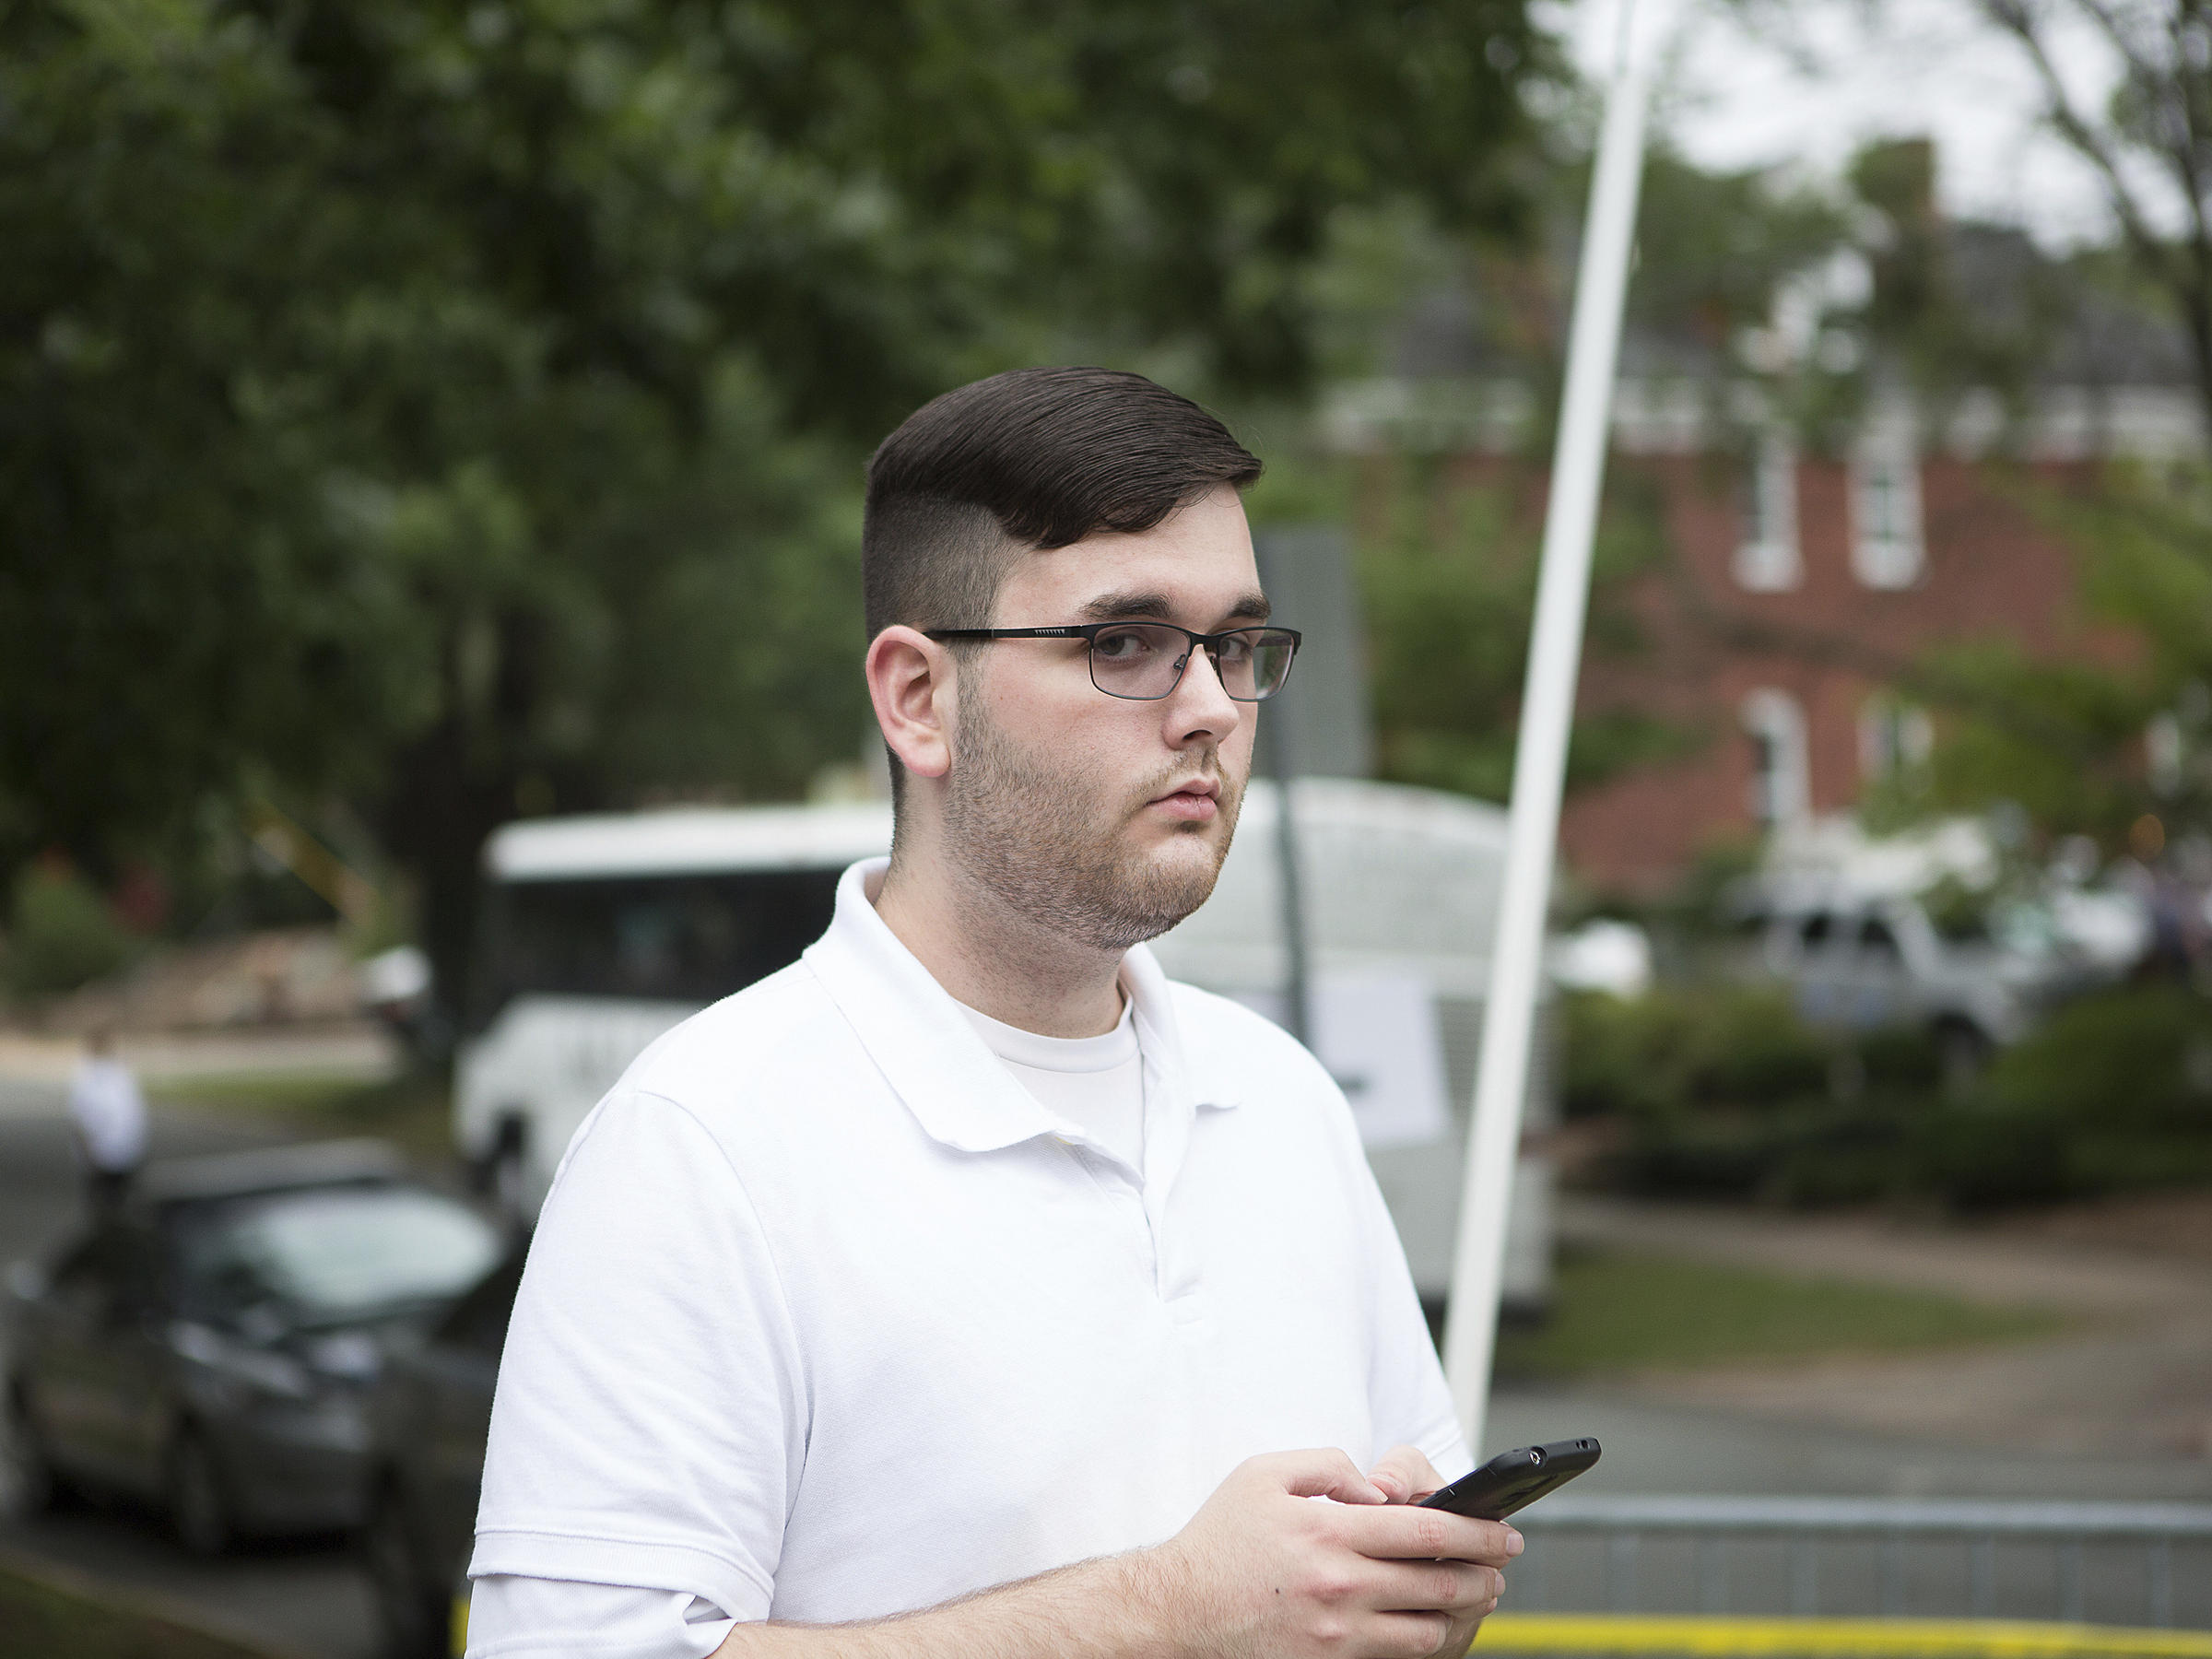 Jury recommends life in prison plus 419 years for Charlottesville car attacker